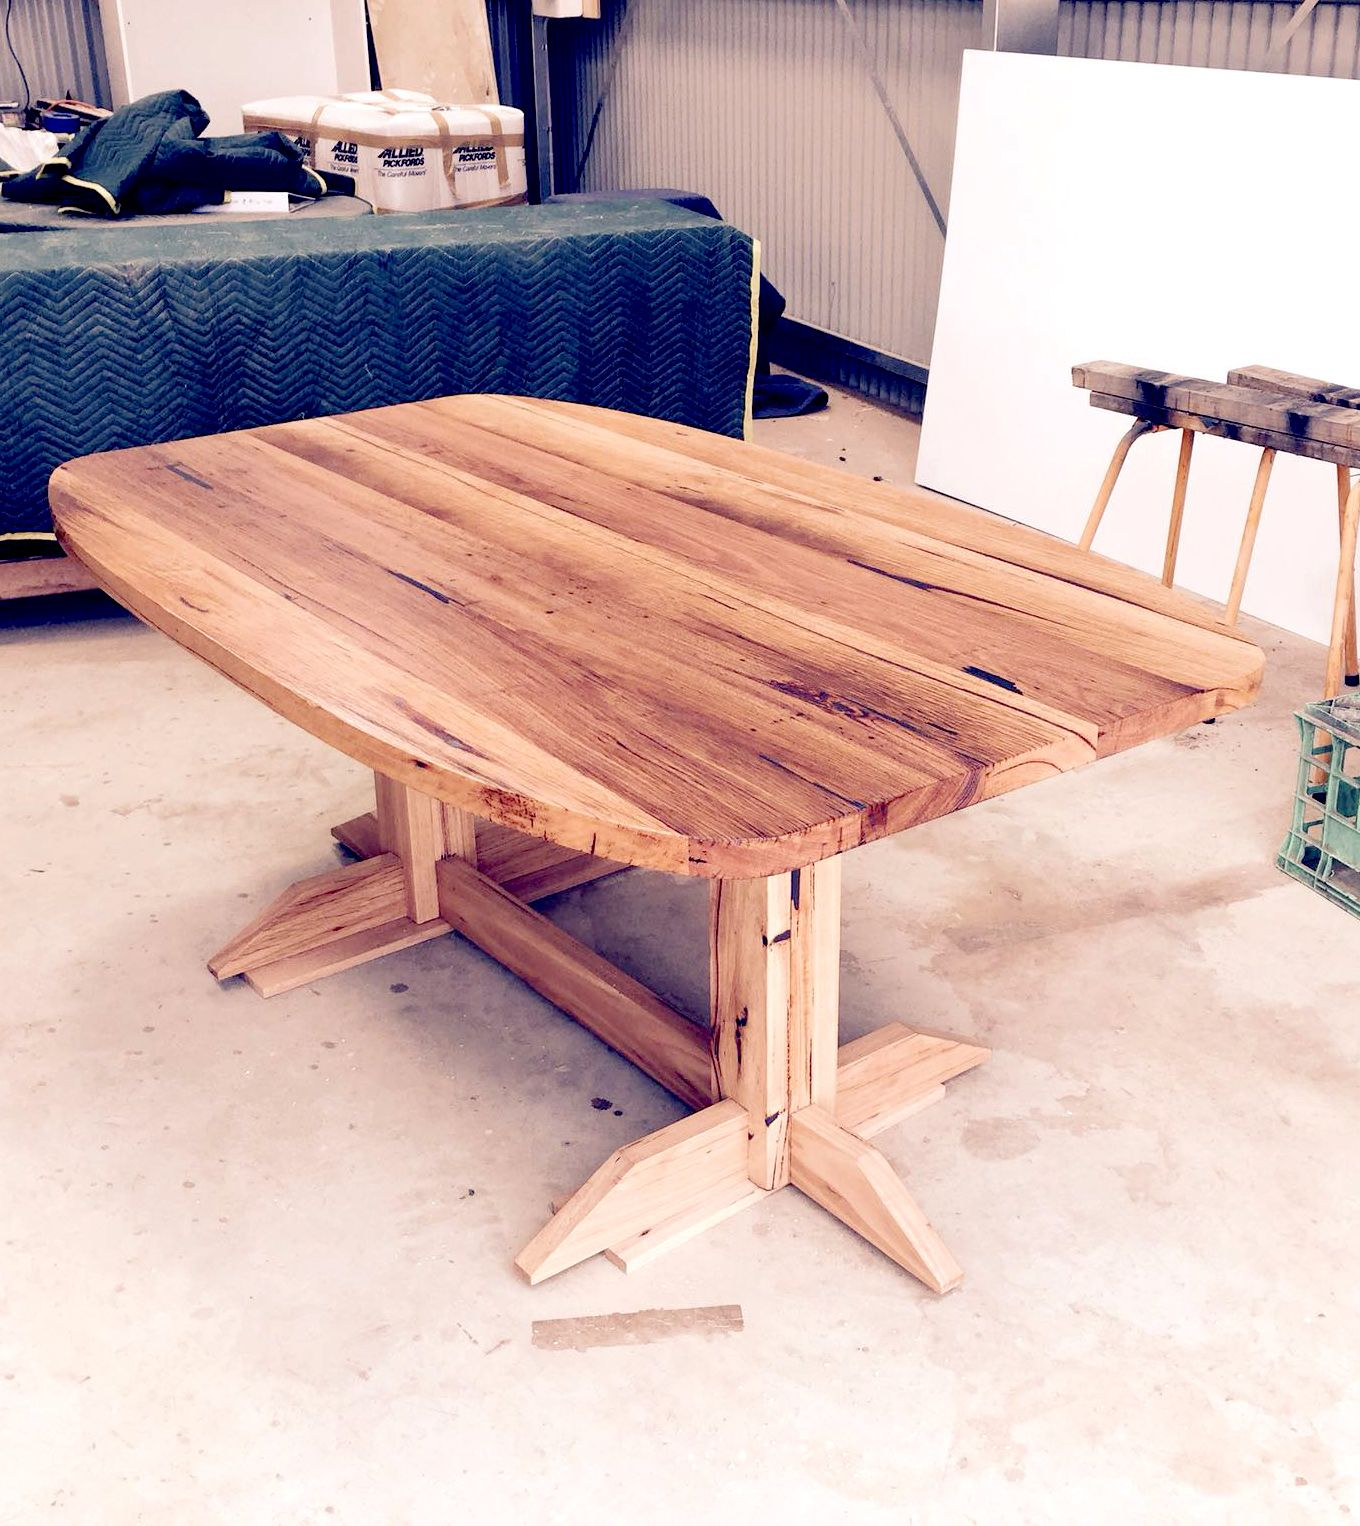 Furniture Legs Brisbane customised rincon dining table design. curved table top and